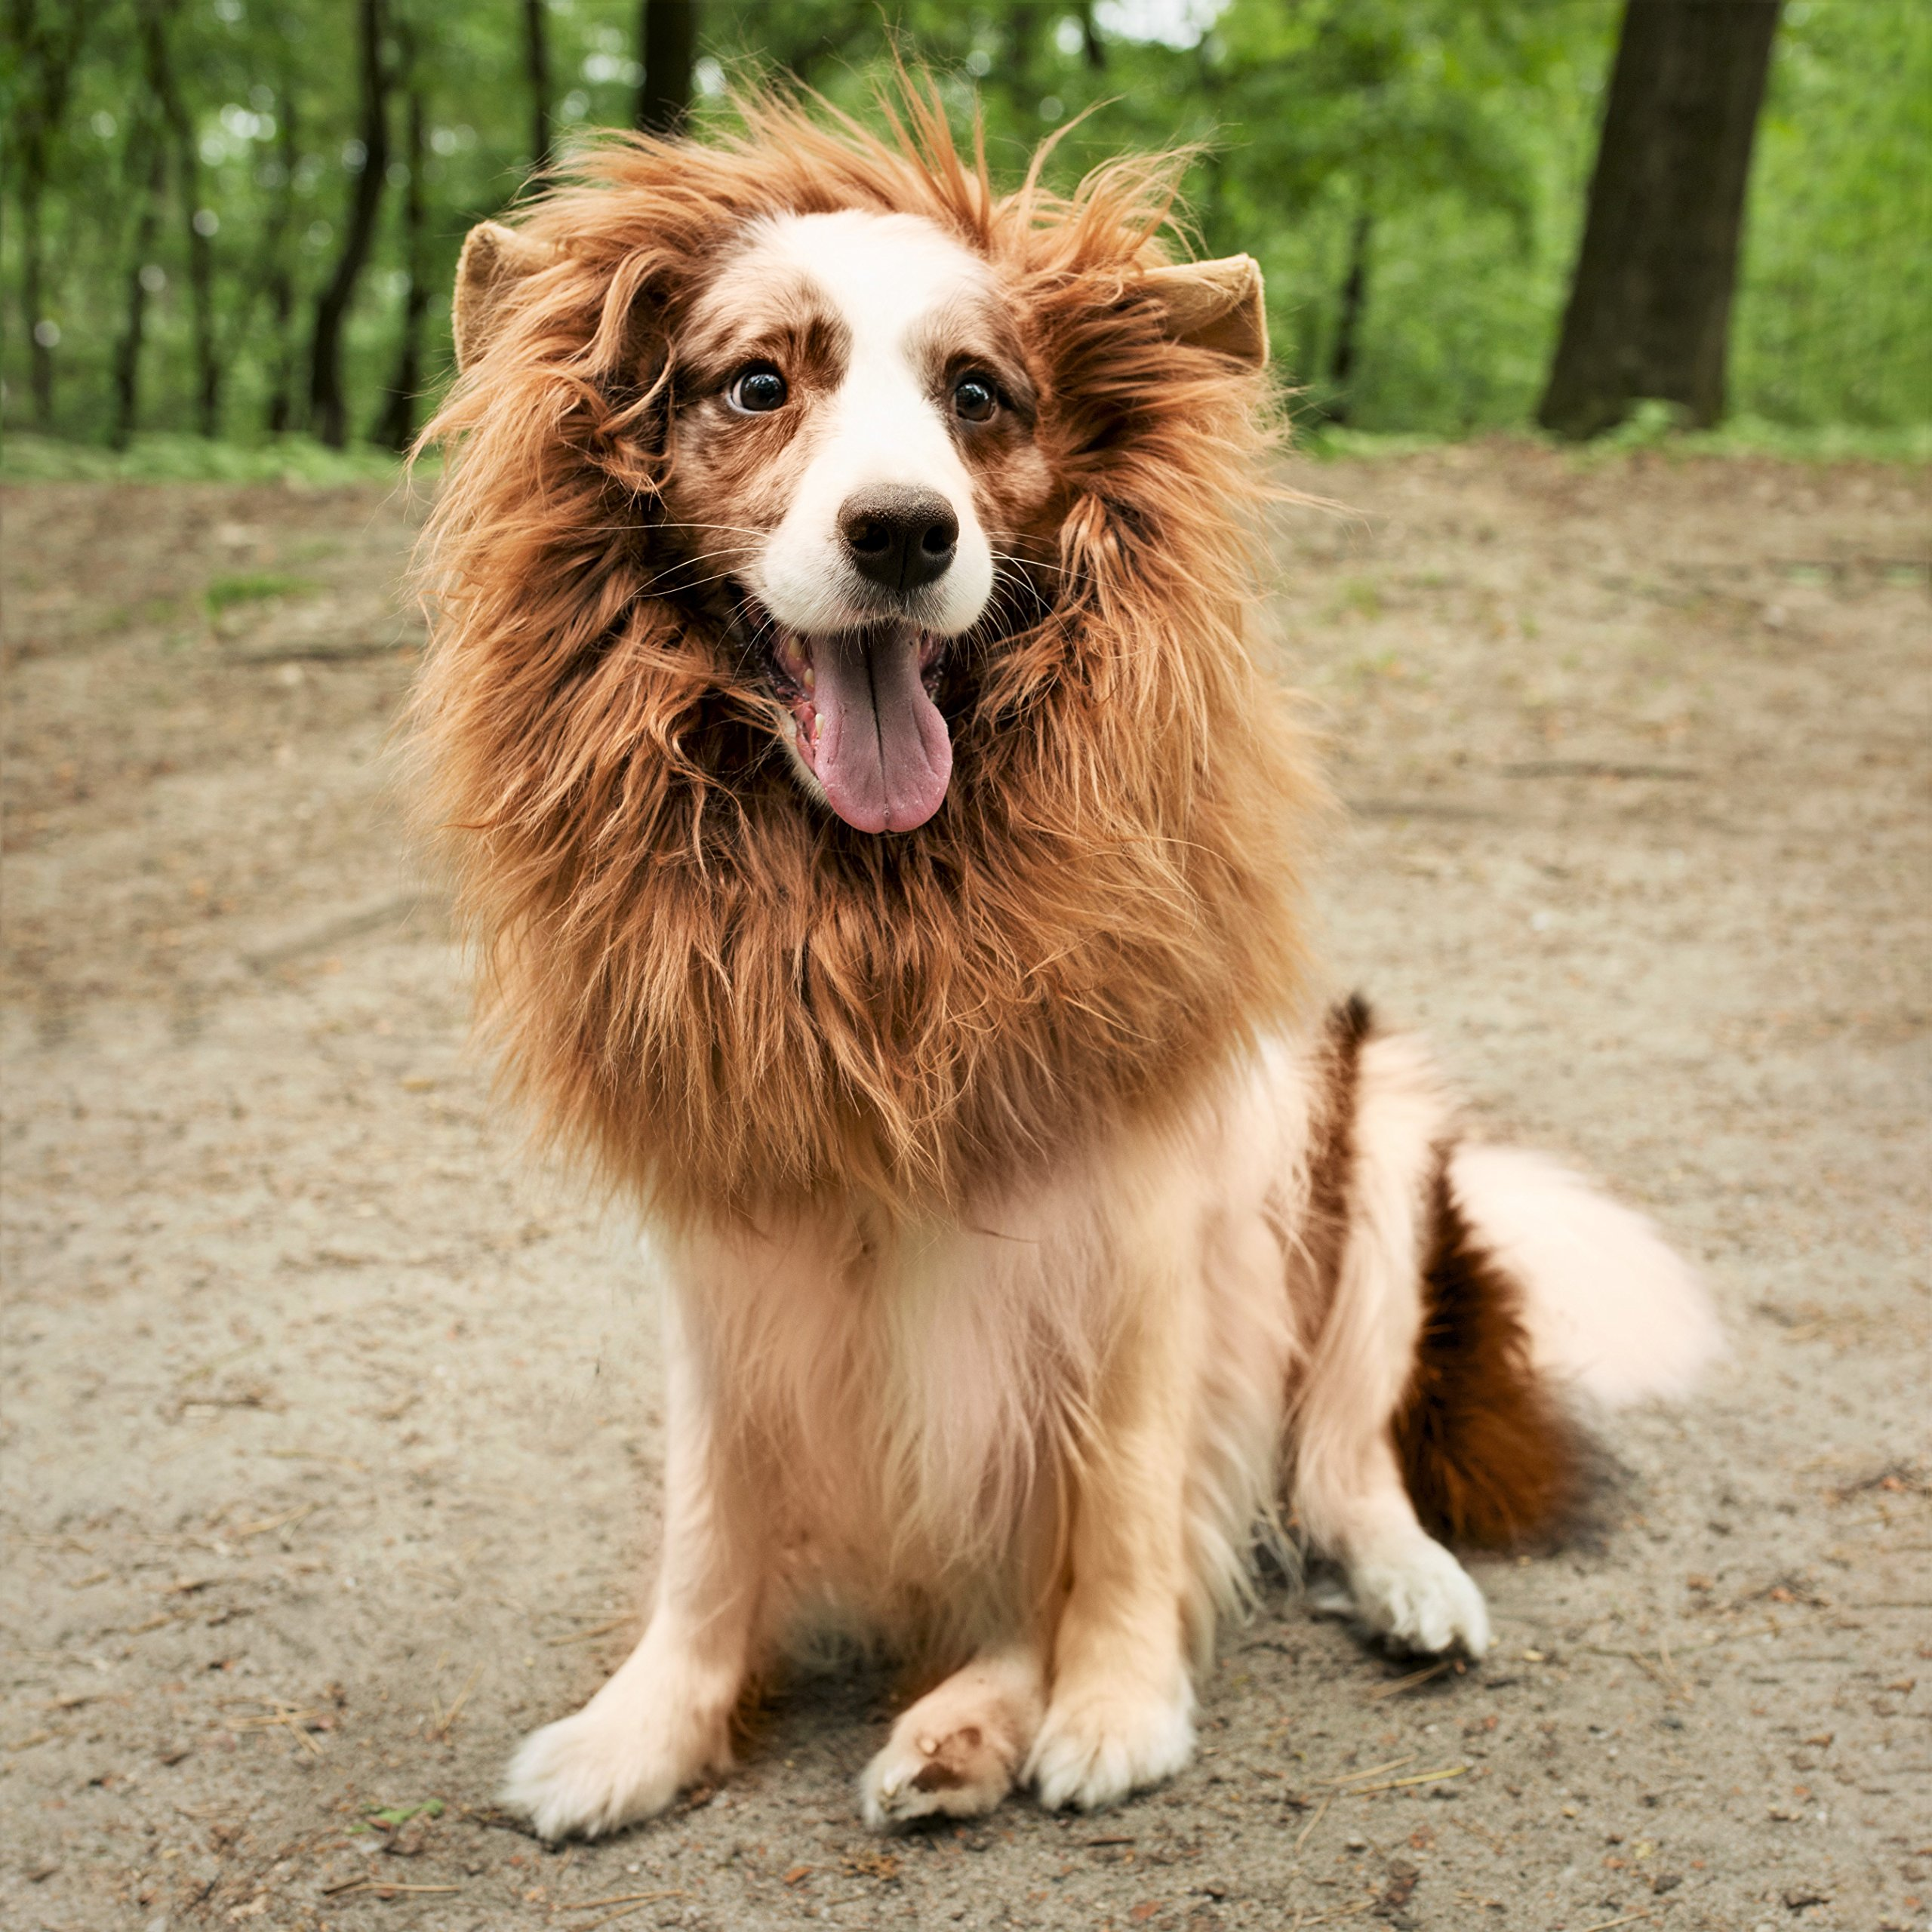 Lion Mane for Dog with Frisbee - Premium Quality, Realistic, Hilarious & Eye Catching Dog Lion Mane - Dog Costume with Ears - Comfortable Lion Wig for Medium and Large Dogs - Perfect Dog Gift by Joy4Pets (Image #9)